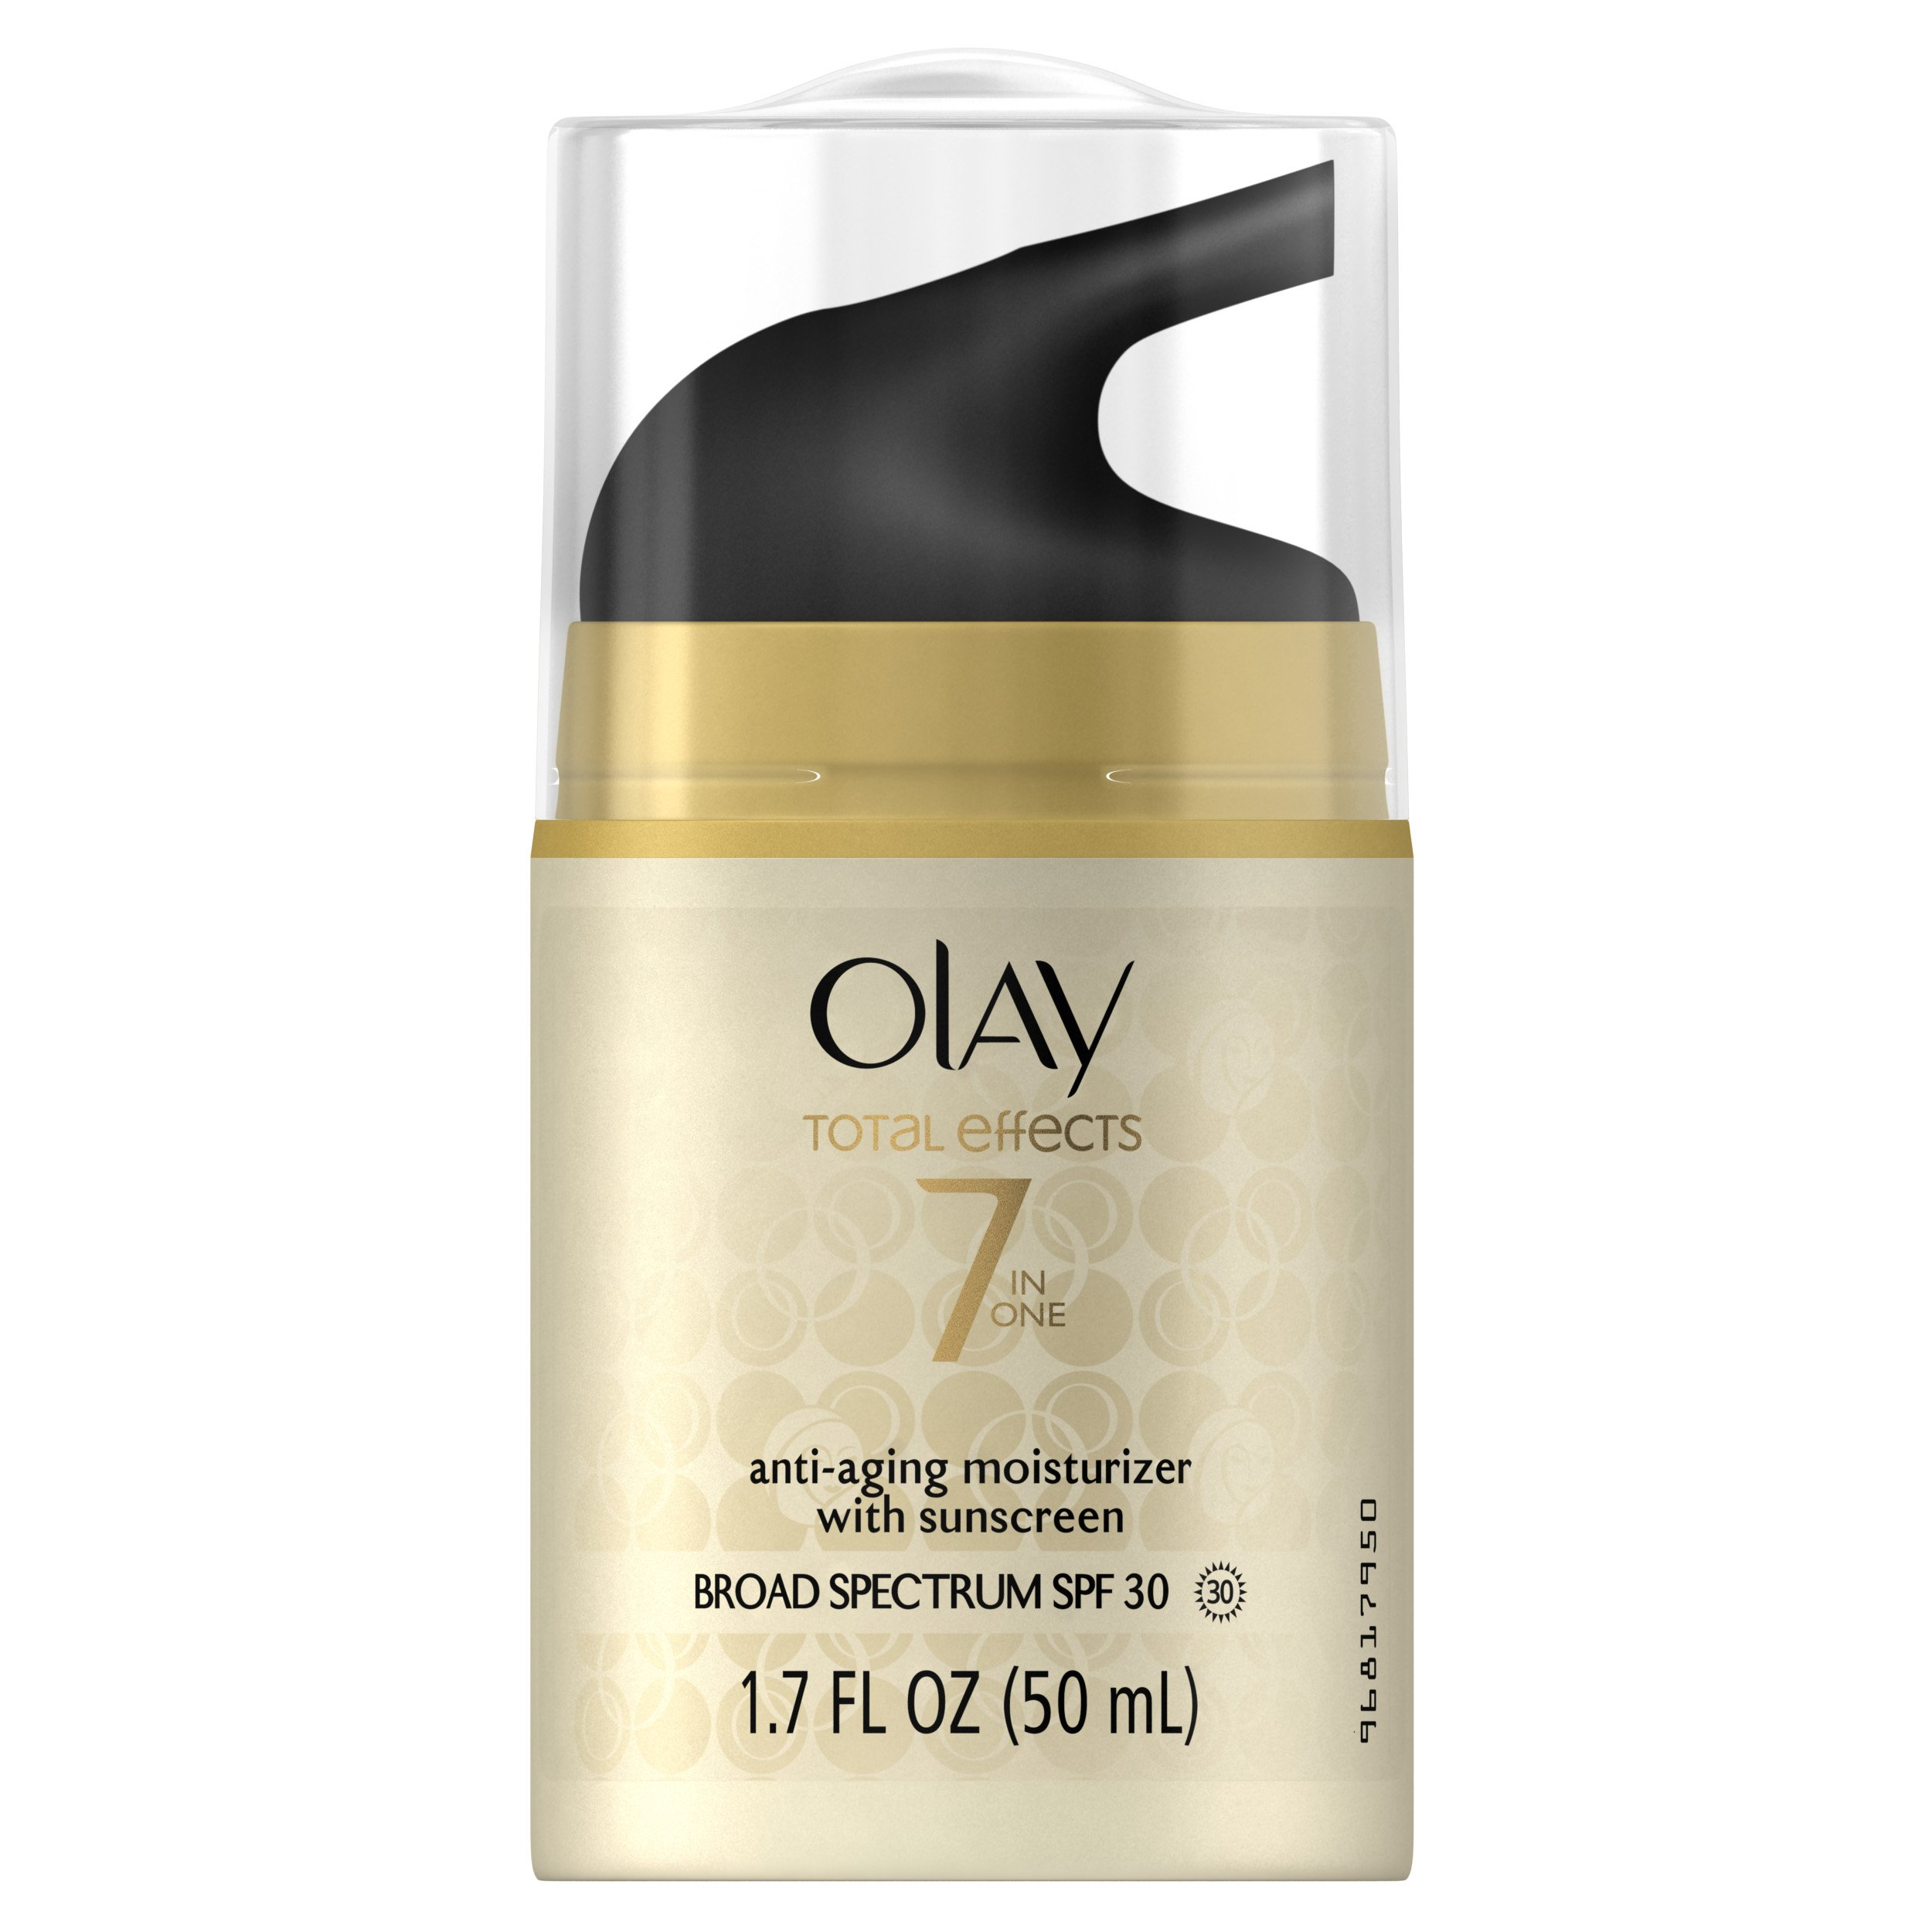 Browse Products Containing Methylparaben Skin Deep Cosmetics Olay Total Effects Day Cream Normal Spf 15 8g Old Product 7 In One Anti Aging Face Moisturizer 30 2016 Formulation